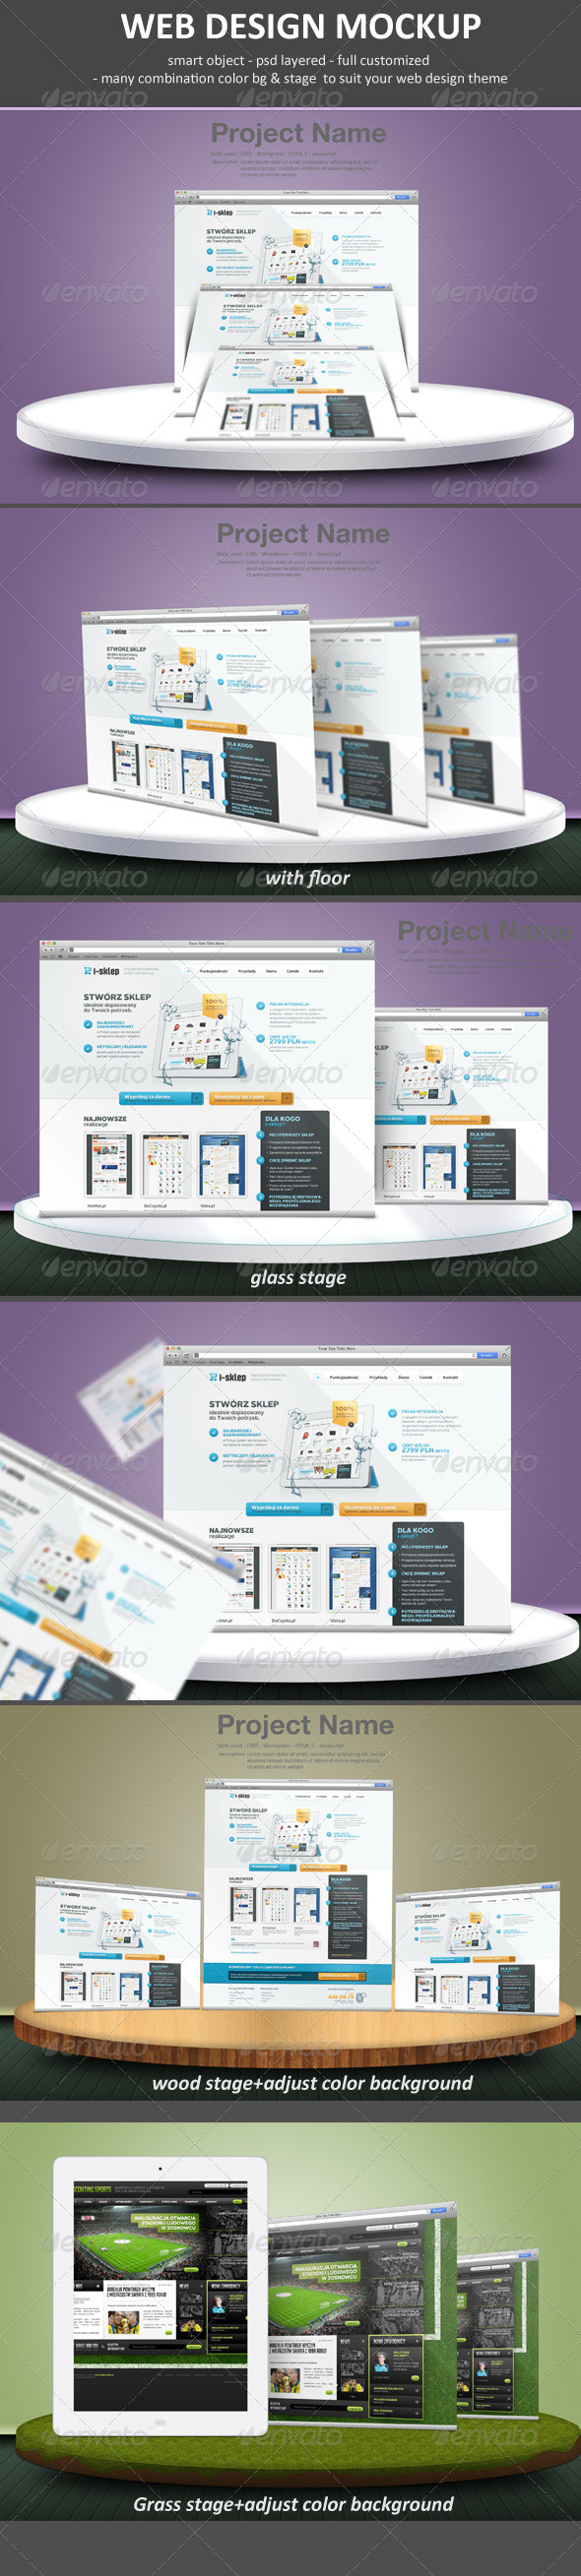 Web Design Mockup - Website Displays